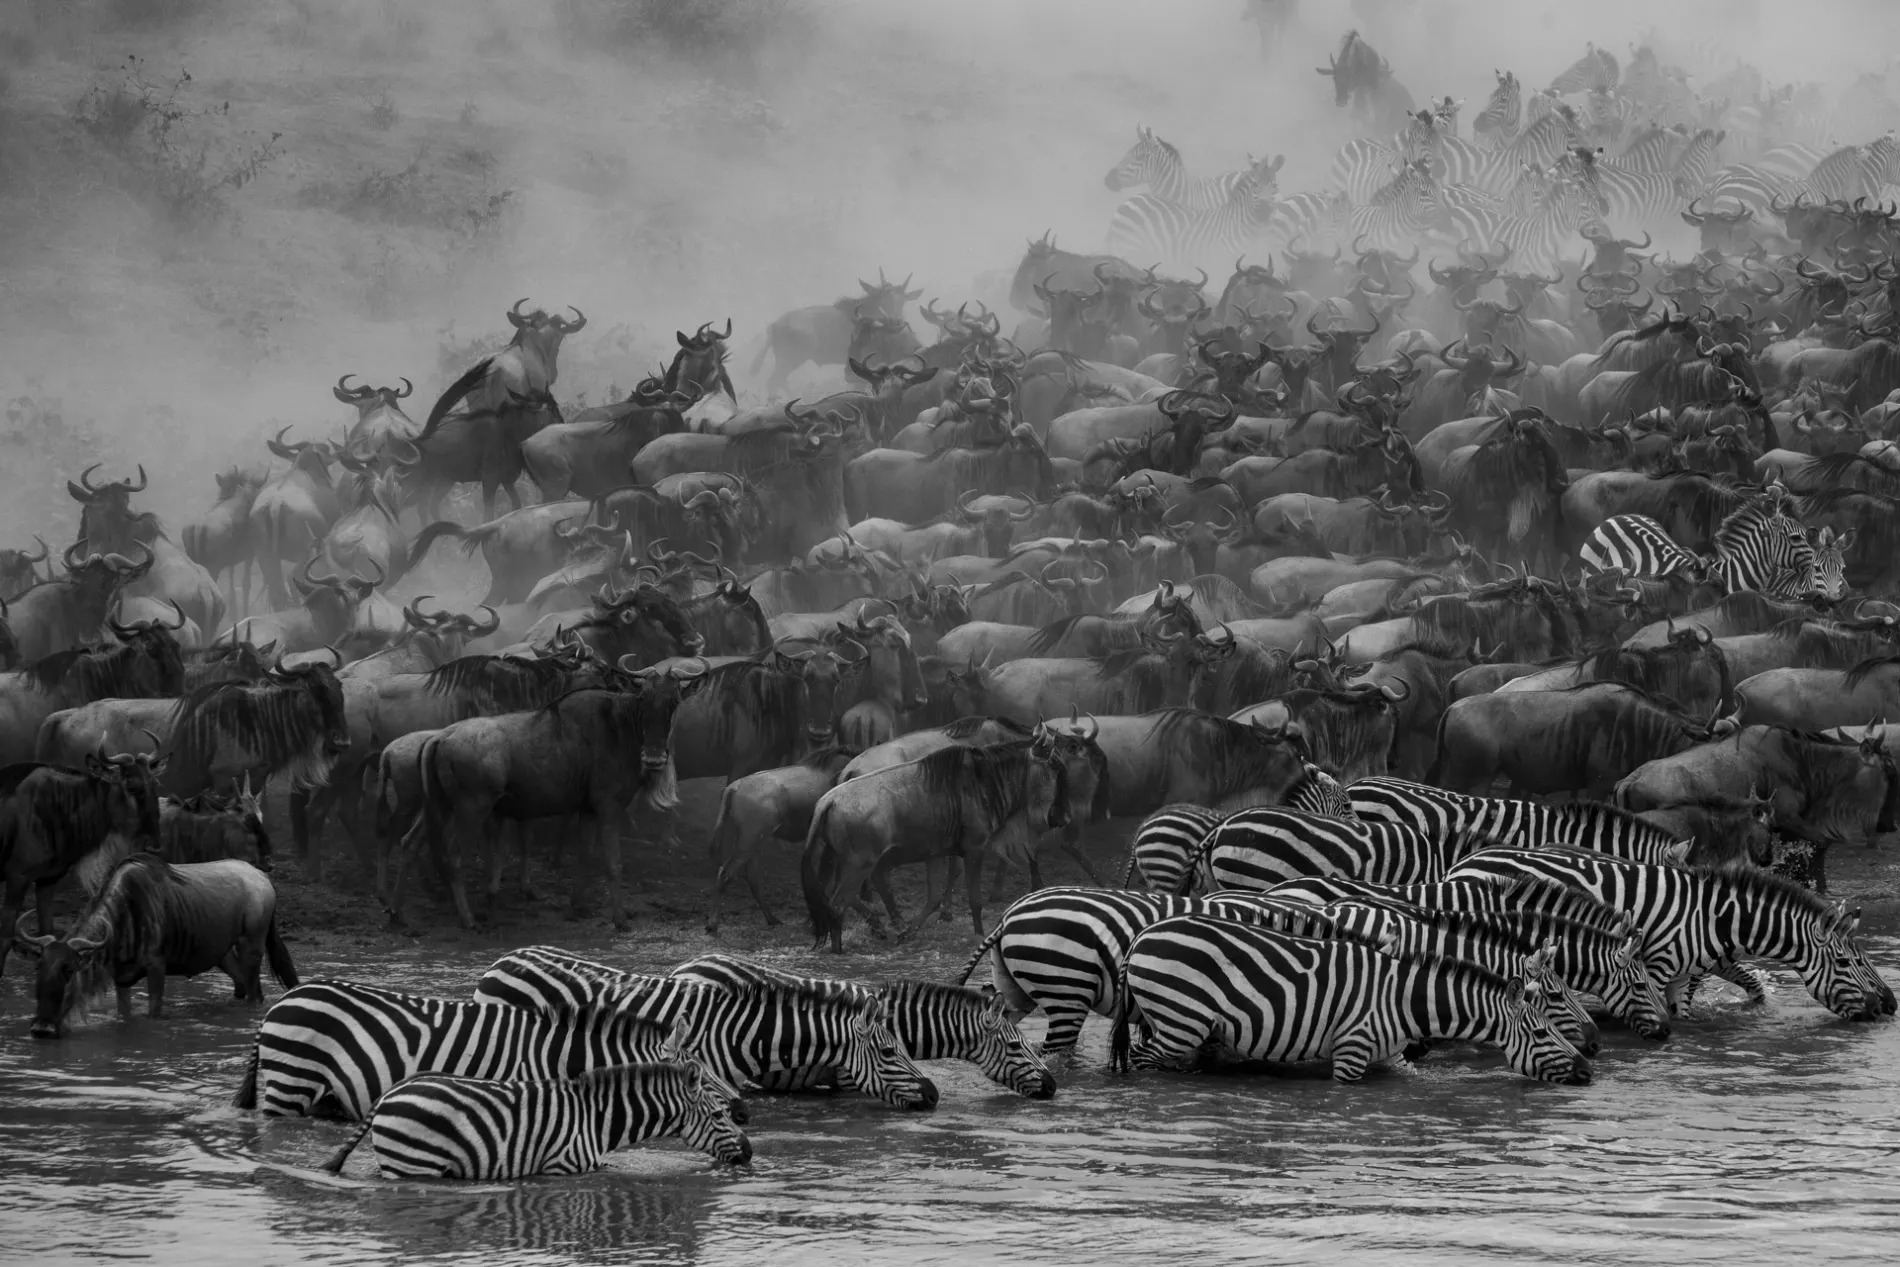 Zebra and wild in river